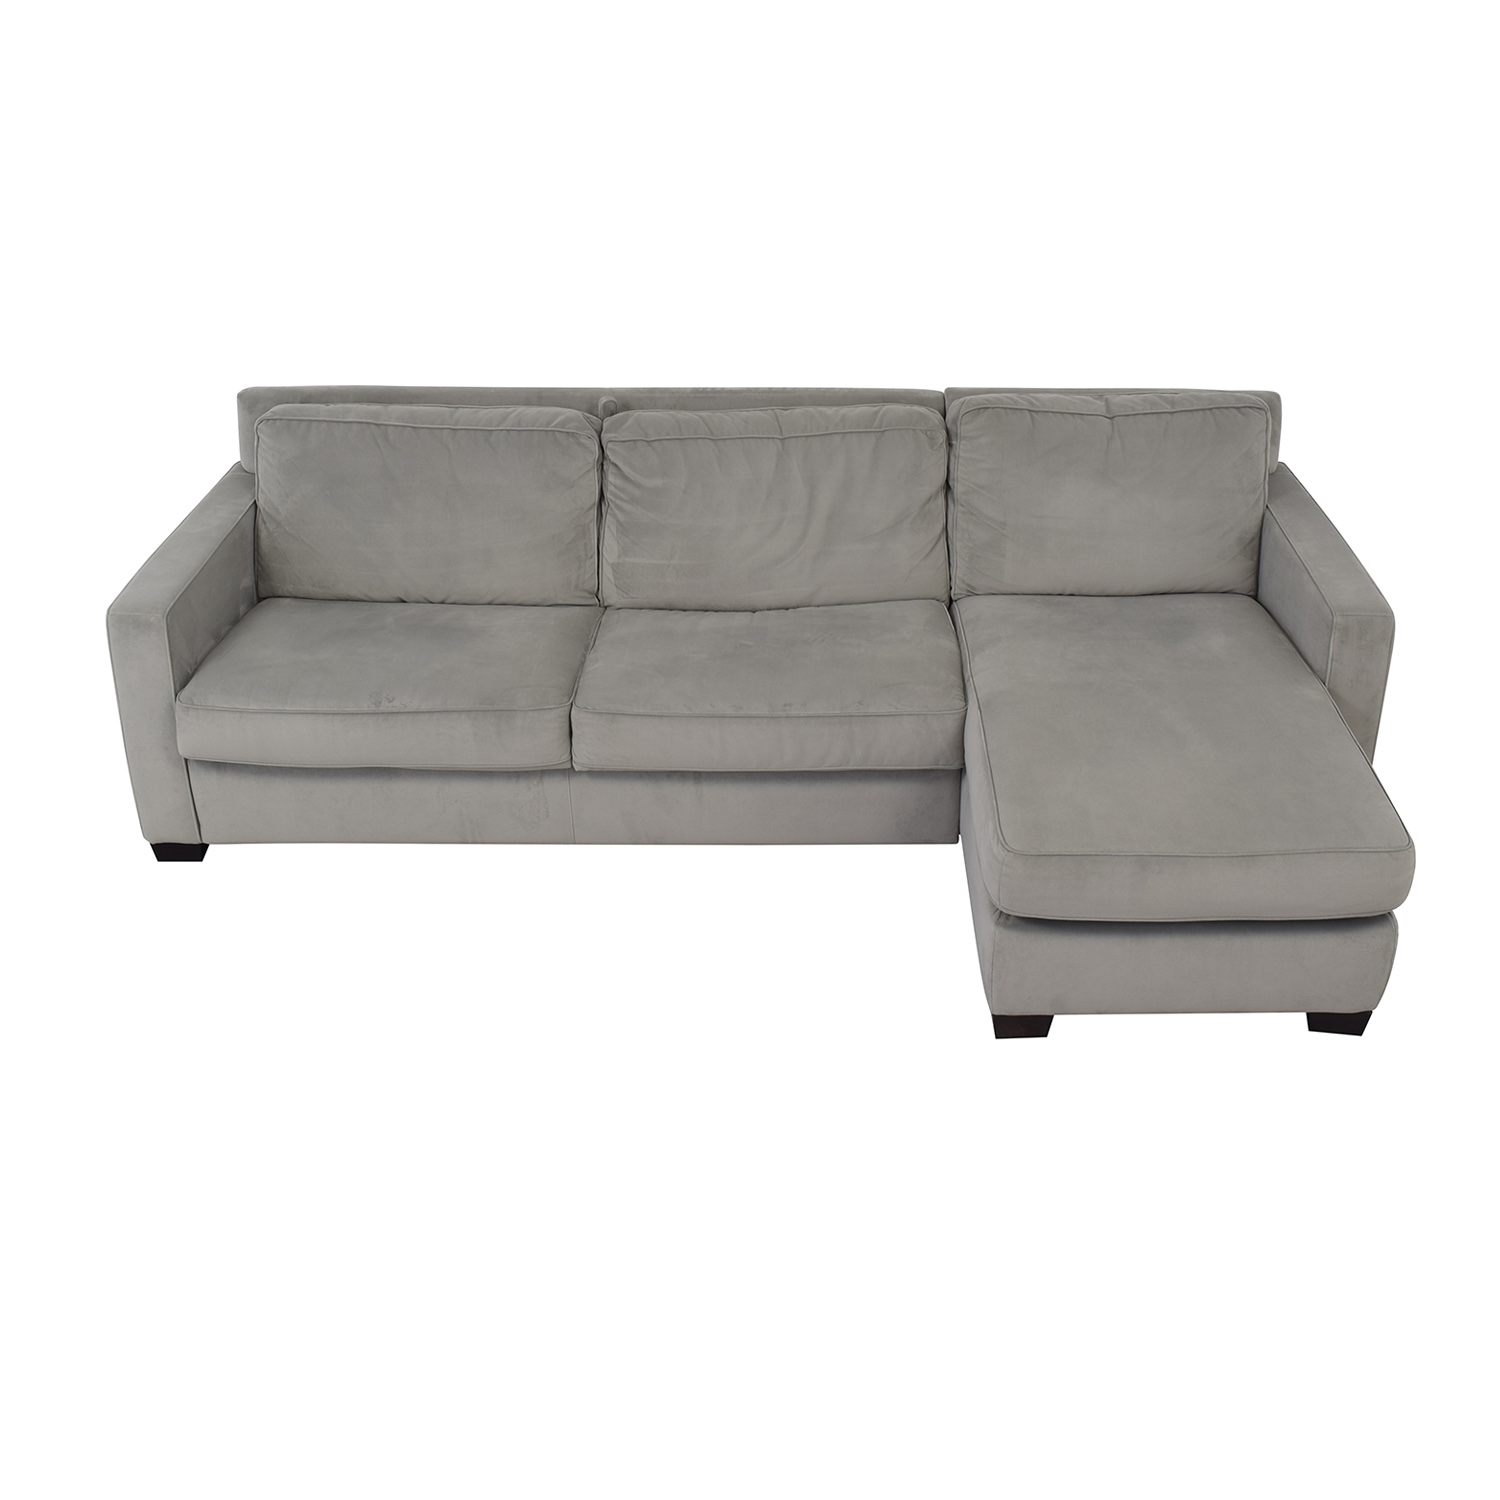 West Elm West Elm Henry Sectional Sofa Bed with Storage on sale